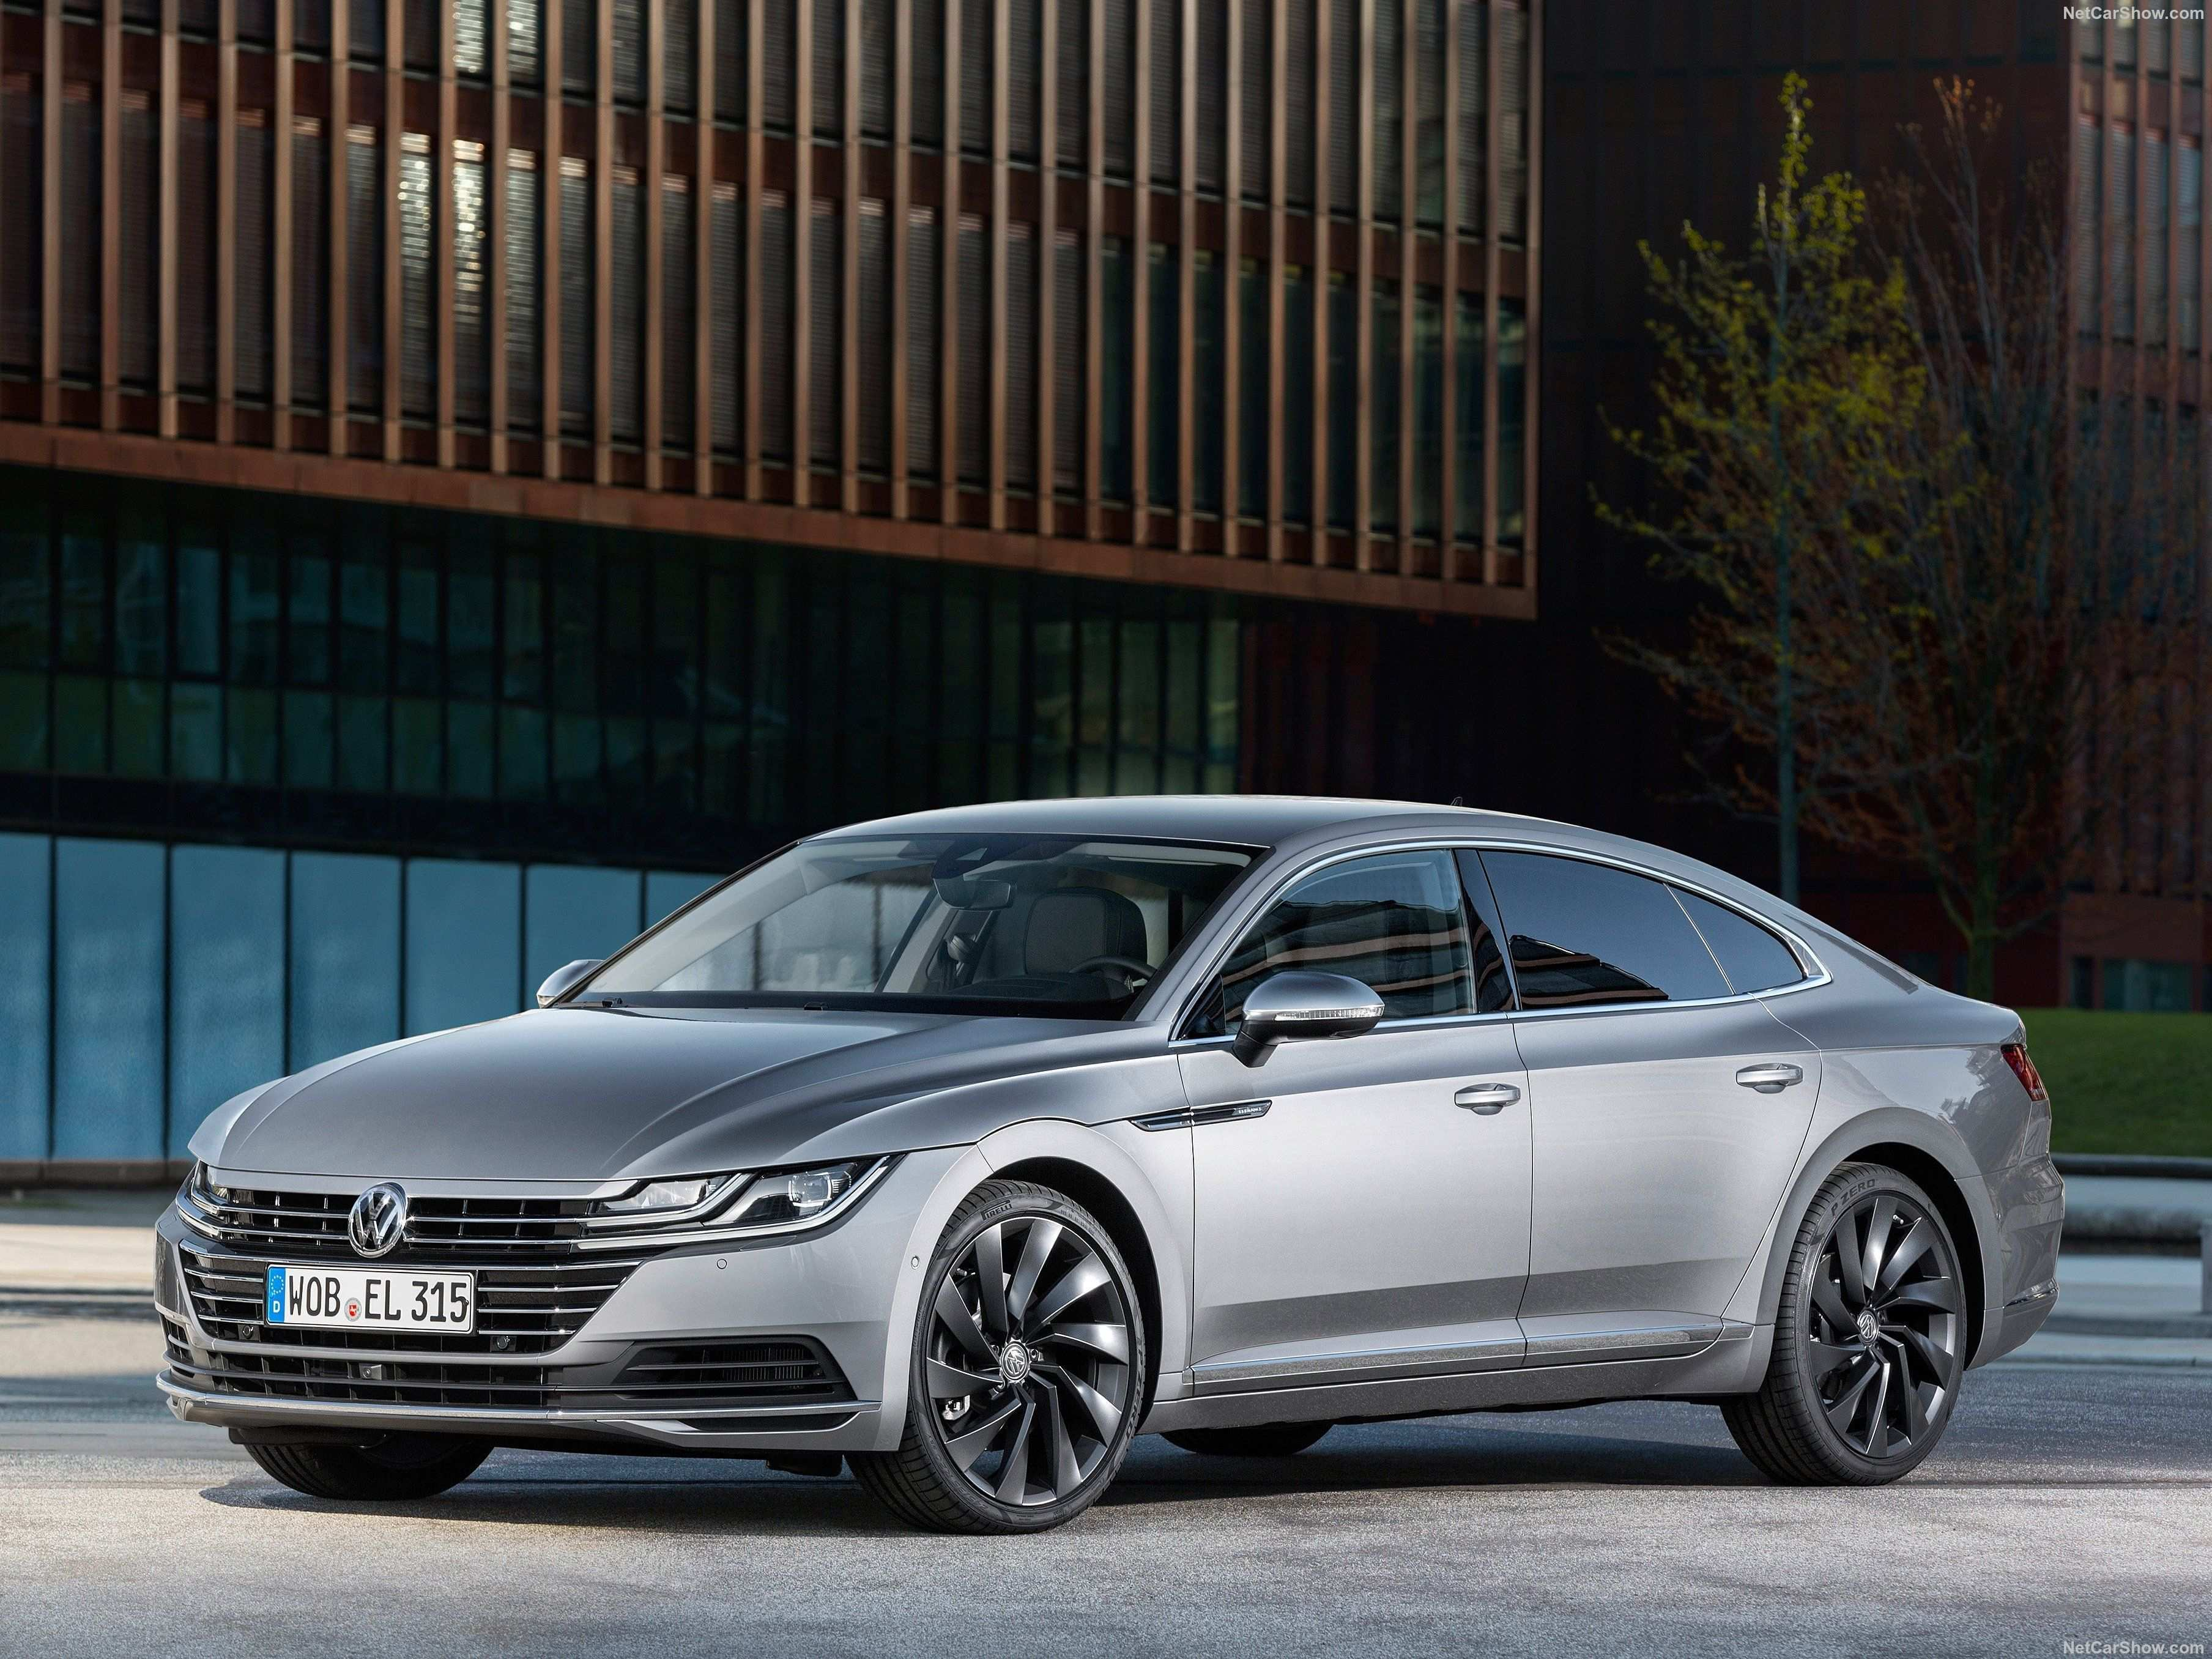 39 All New Best Volkswagen Lineup 2019 Review And Release Date New Review for Best Volkswagen Lineup 2019 Review And Release Date